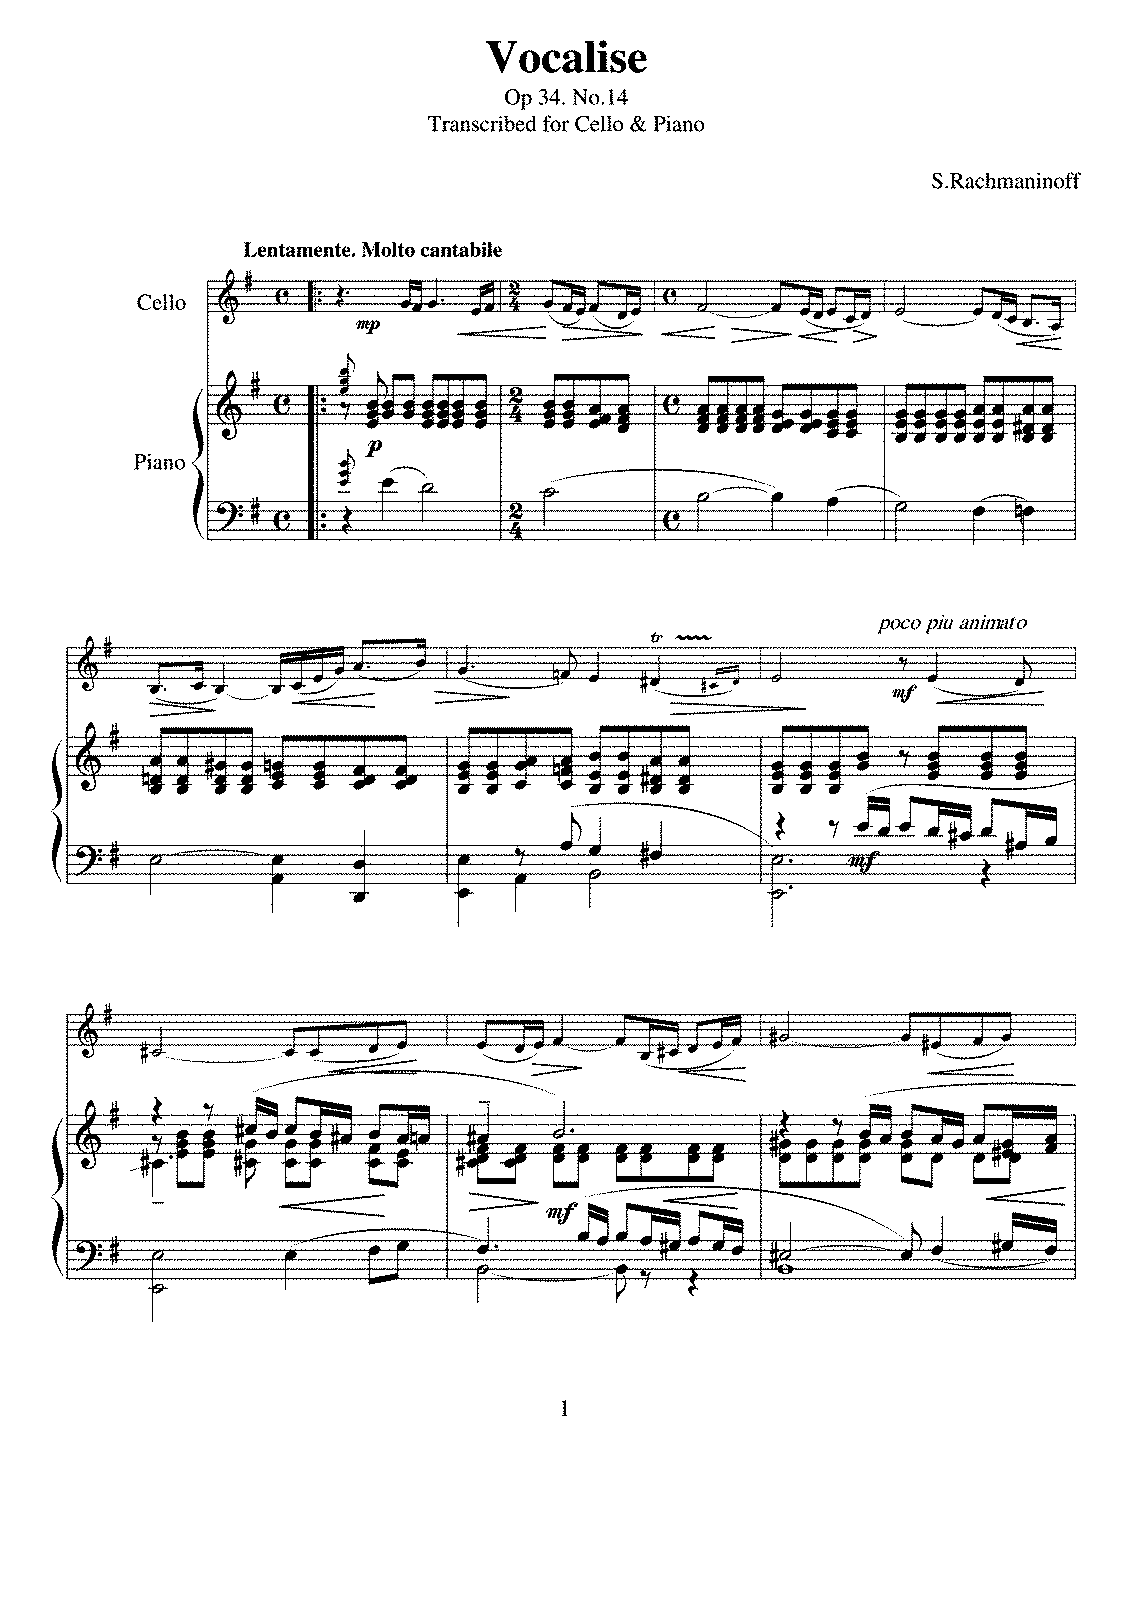 Rachmaninoff Vocalise Piano part.pdf